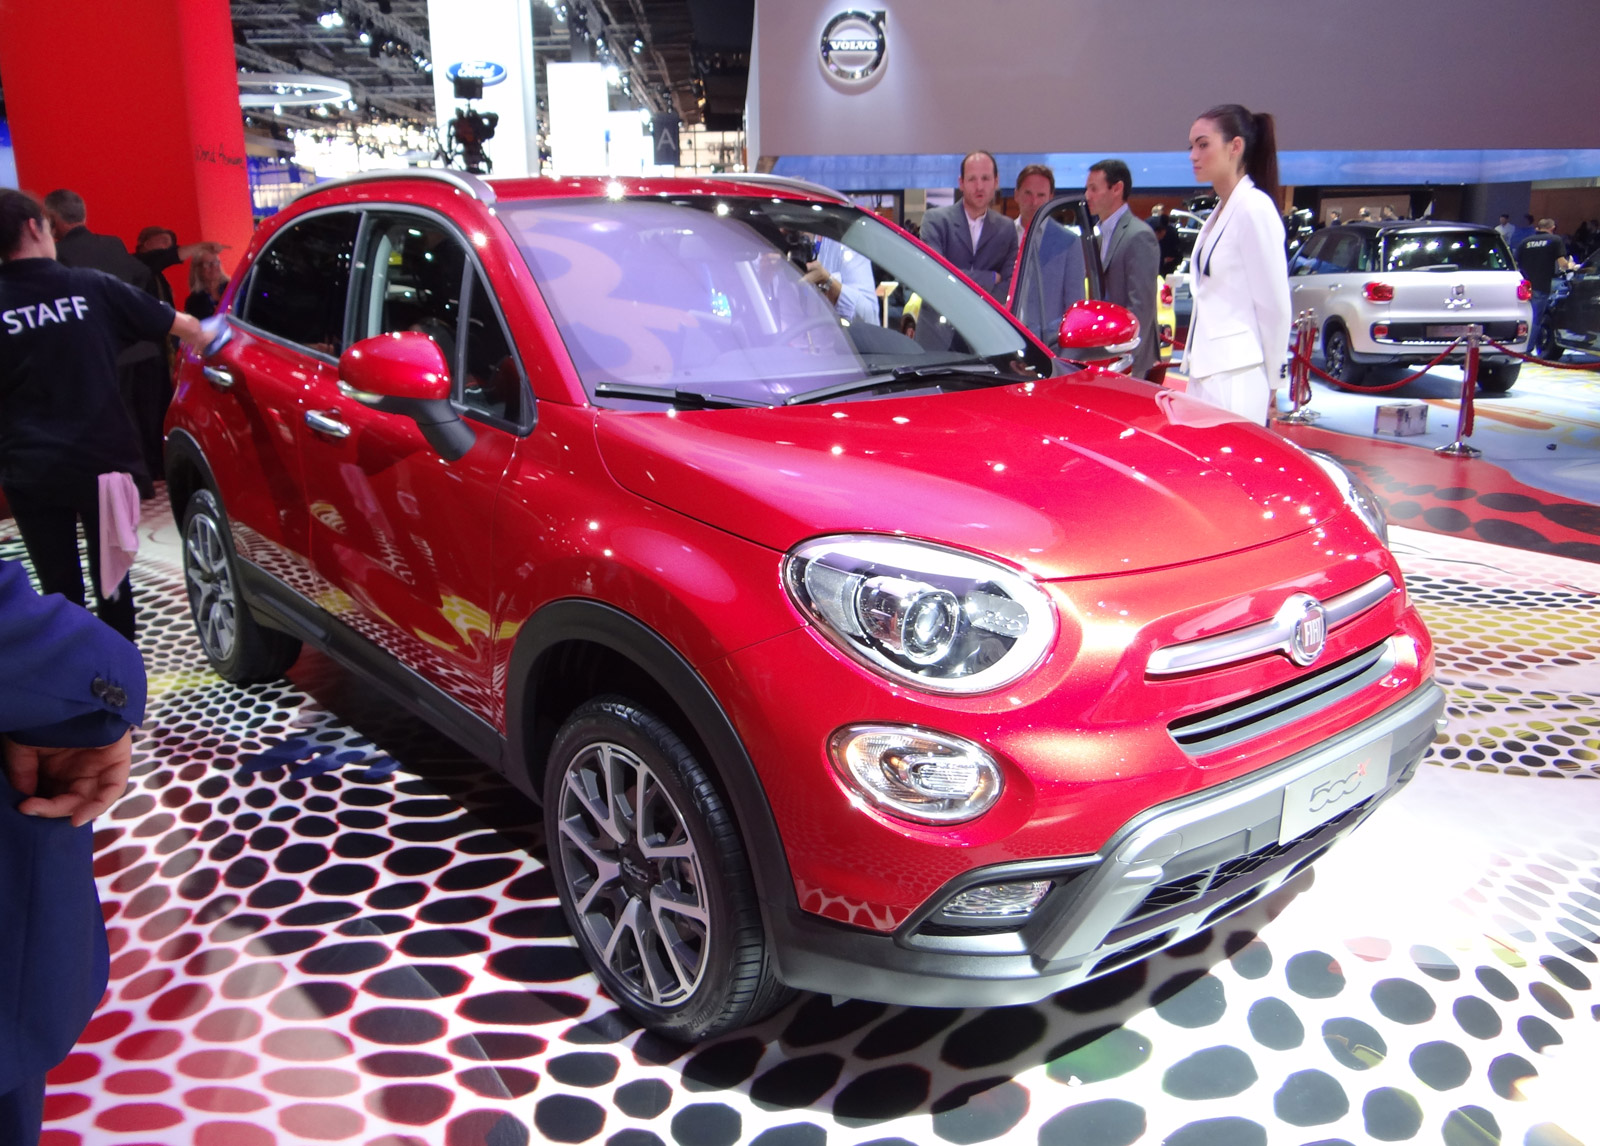 2016 fiat 500x unveiled at 2014 paris auto show live photos. Black Bedroom Furniture Sets. Home Design Ideas